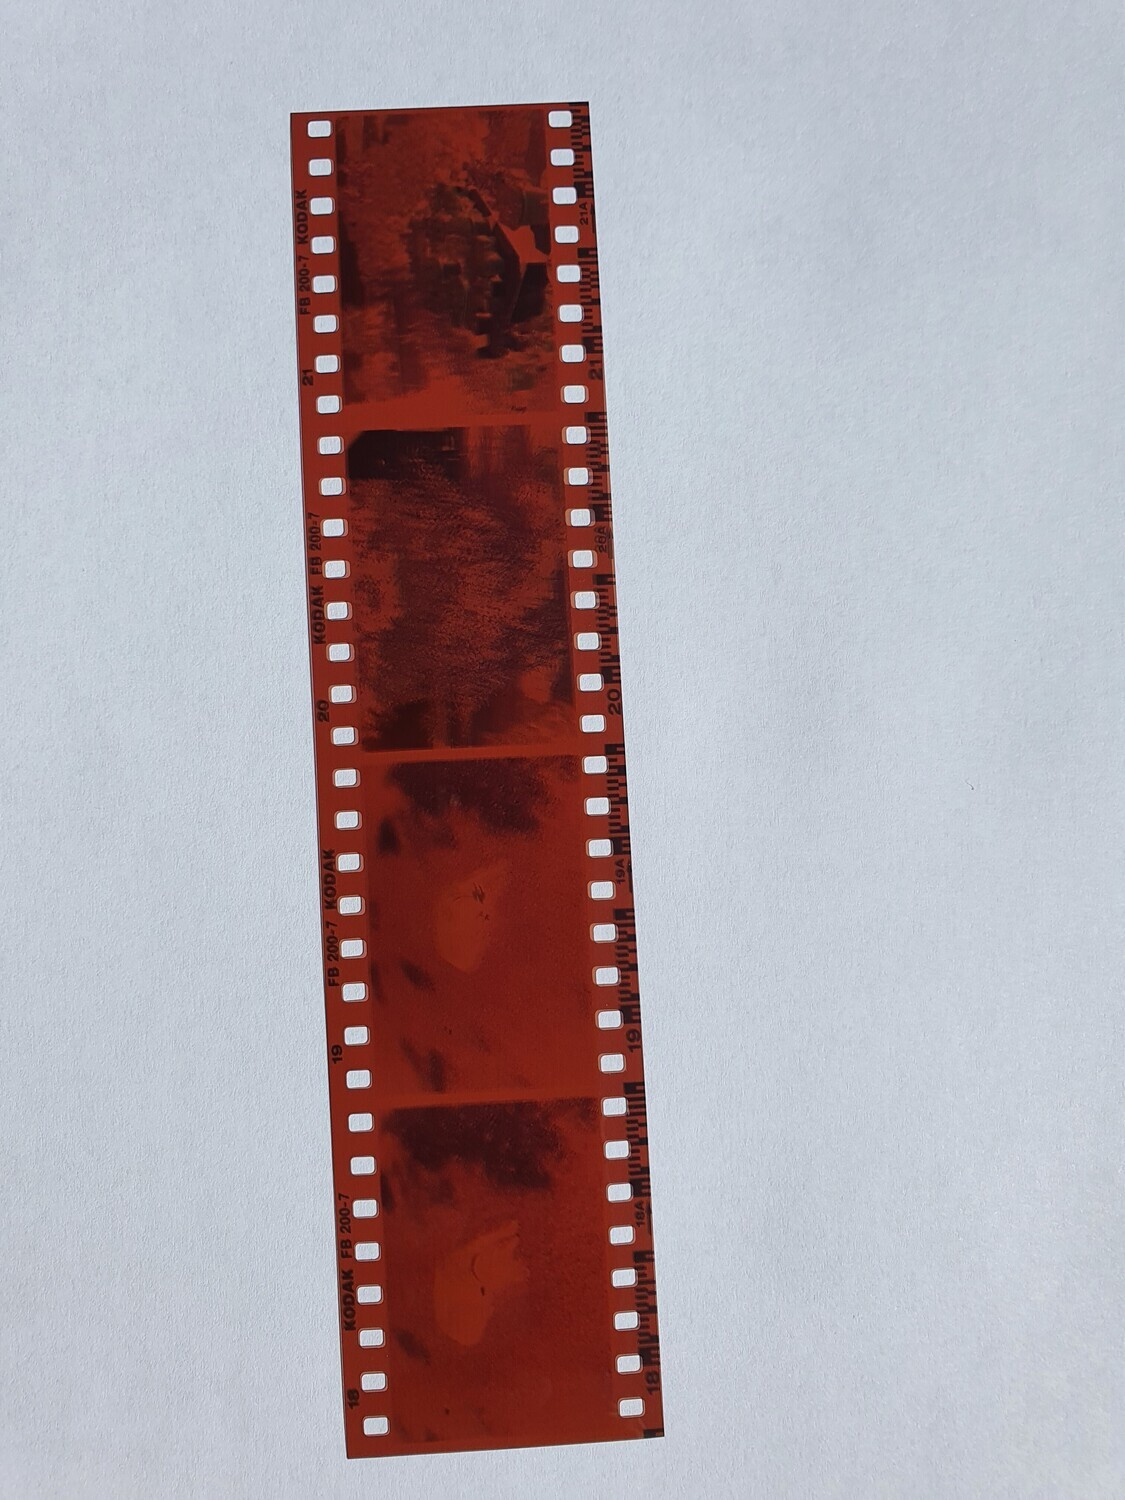 Development of a 135 negative colour film - 35mm format and 36 prints on glossy paper in 9x13 cm format.